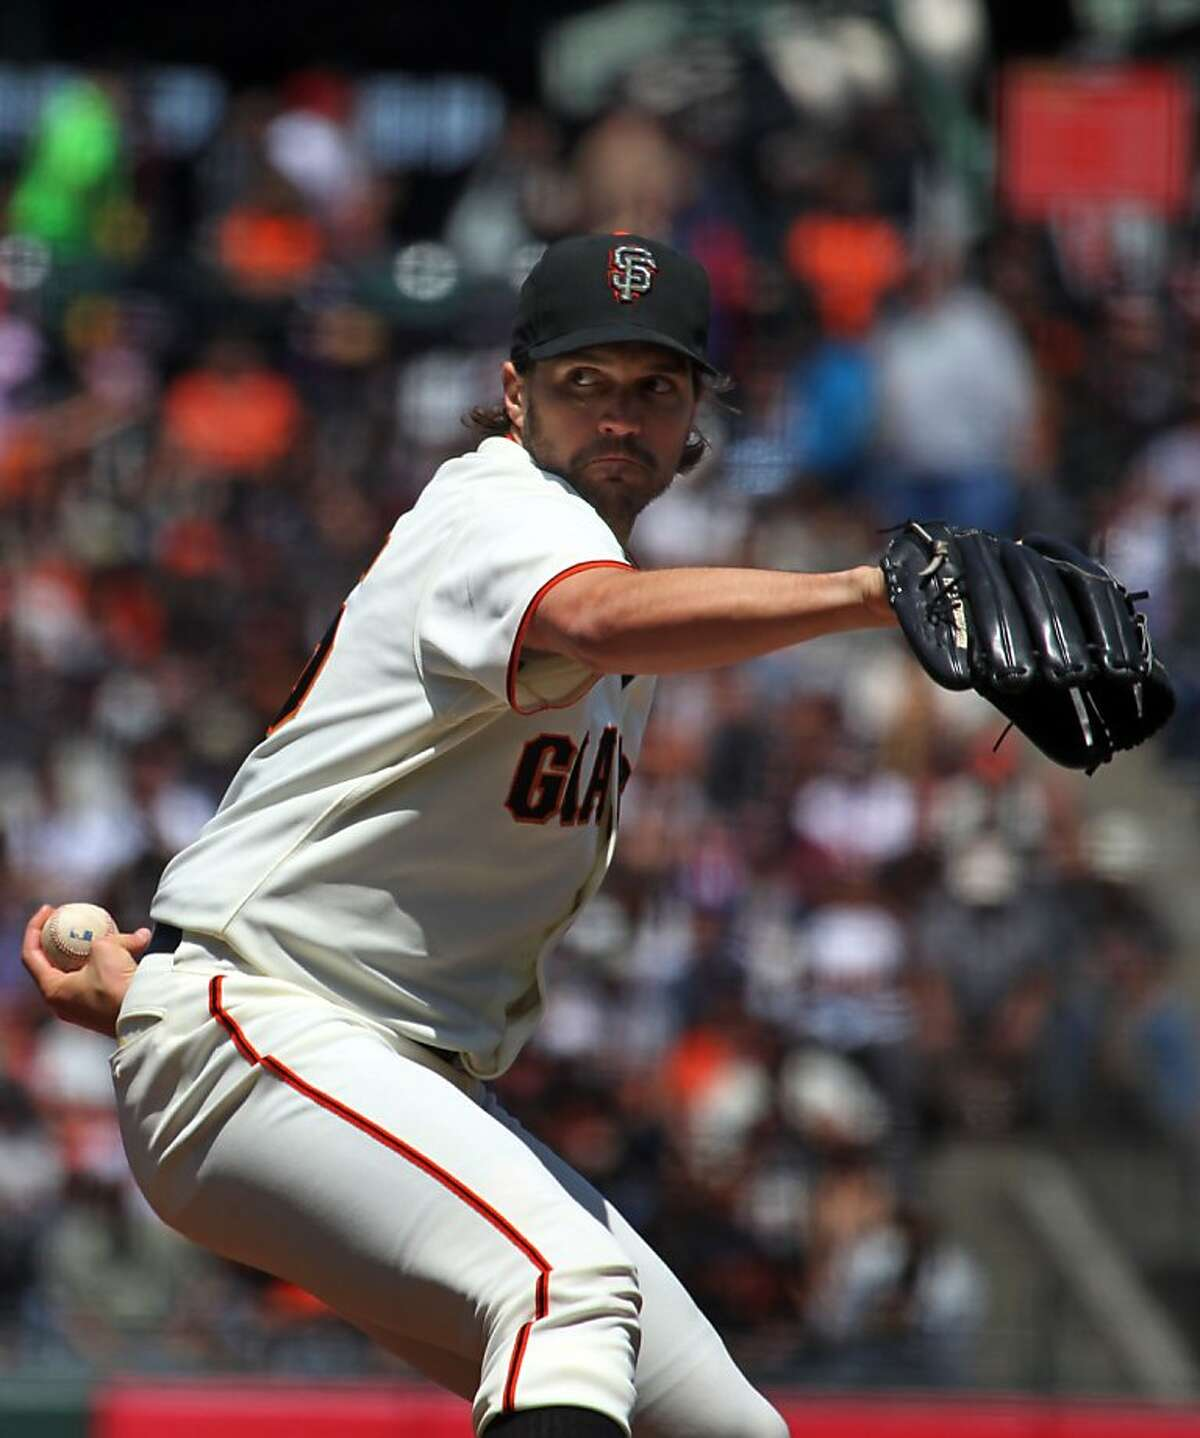 San Francisco starting pitcher Barry Zito throws to the Arizona Diamondbacks in the second inning of their MLB baseball game Monday May 28, 2012 at AT&T Park in San Francisco California.